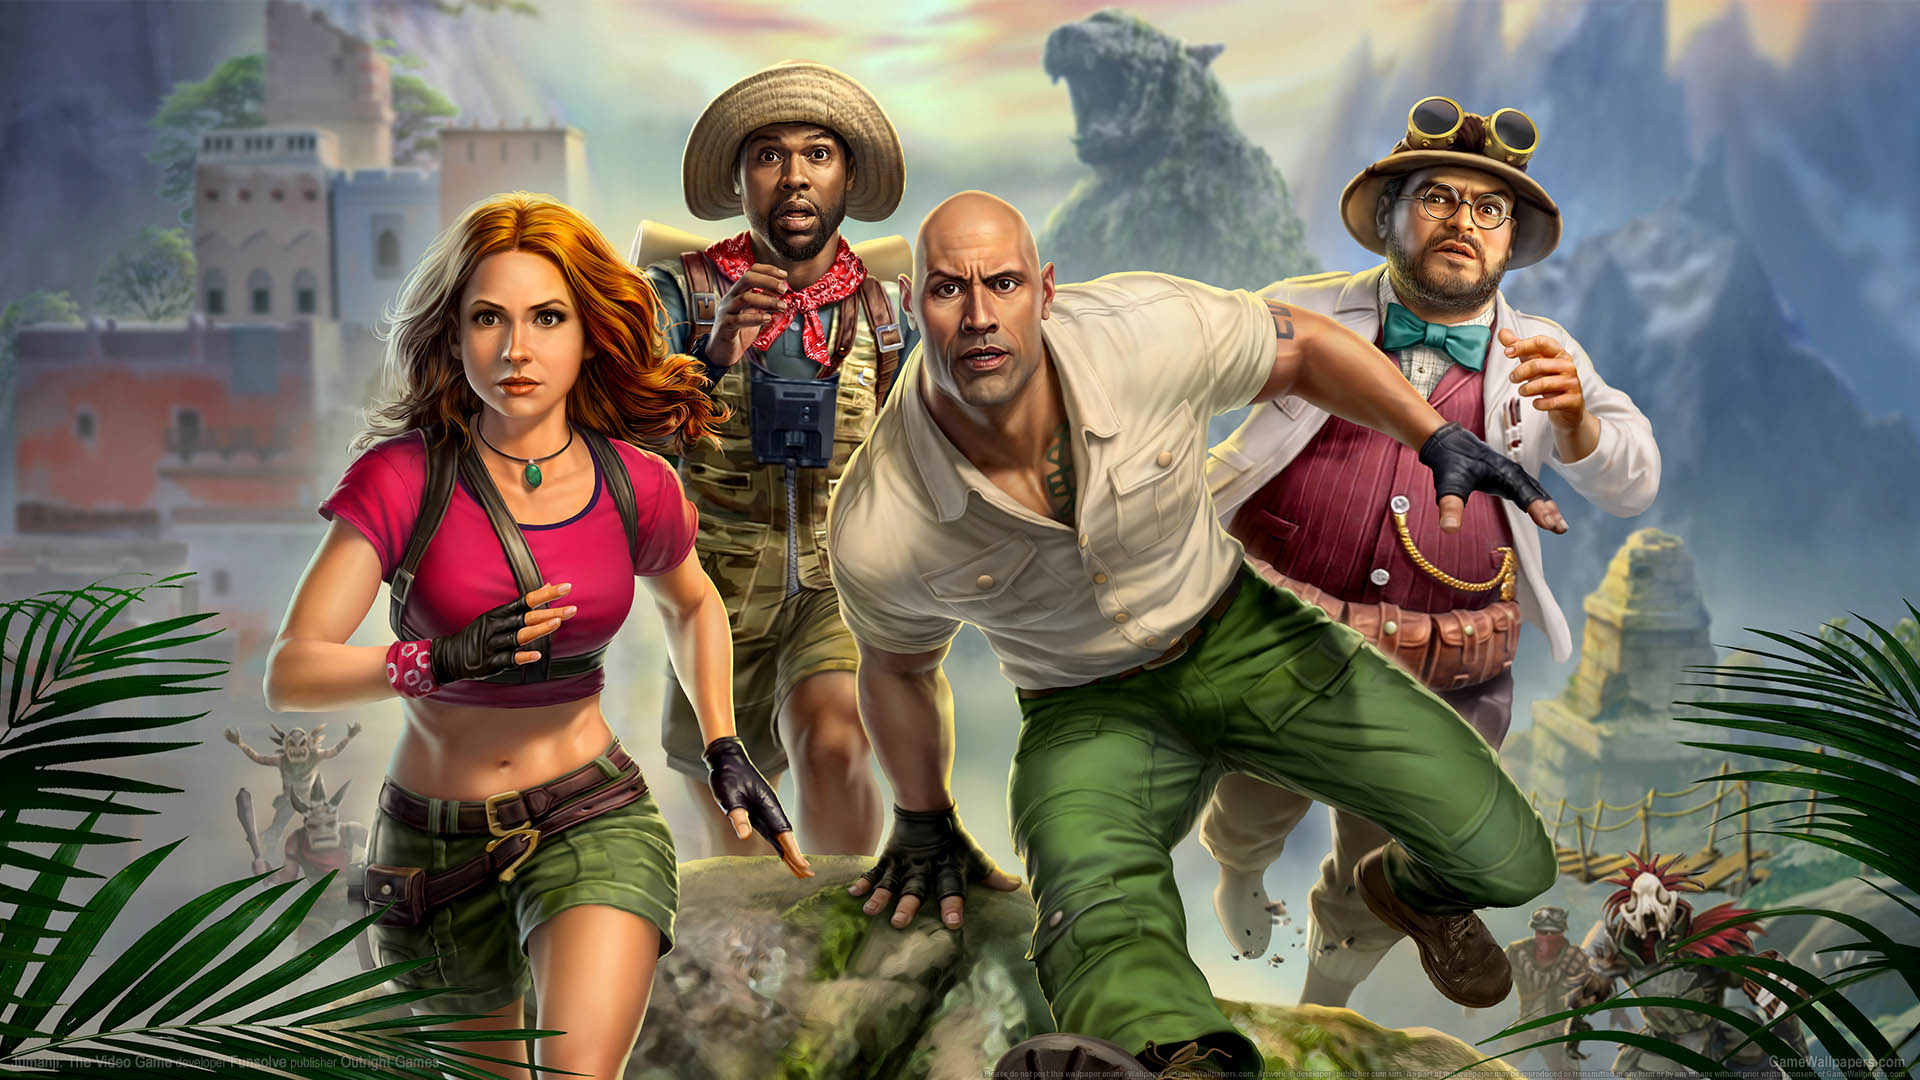 Jumanji: The Video Game achtergrond 01 1920x1080